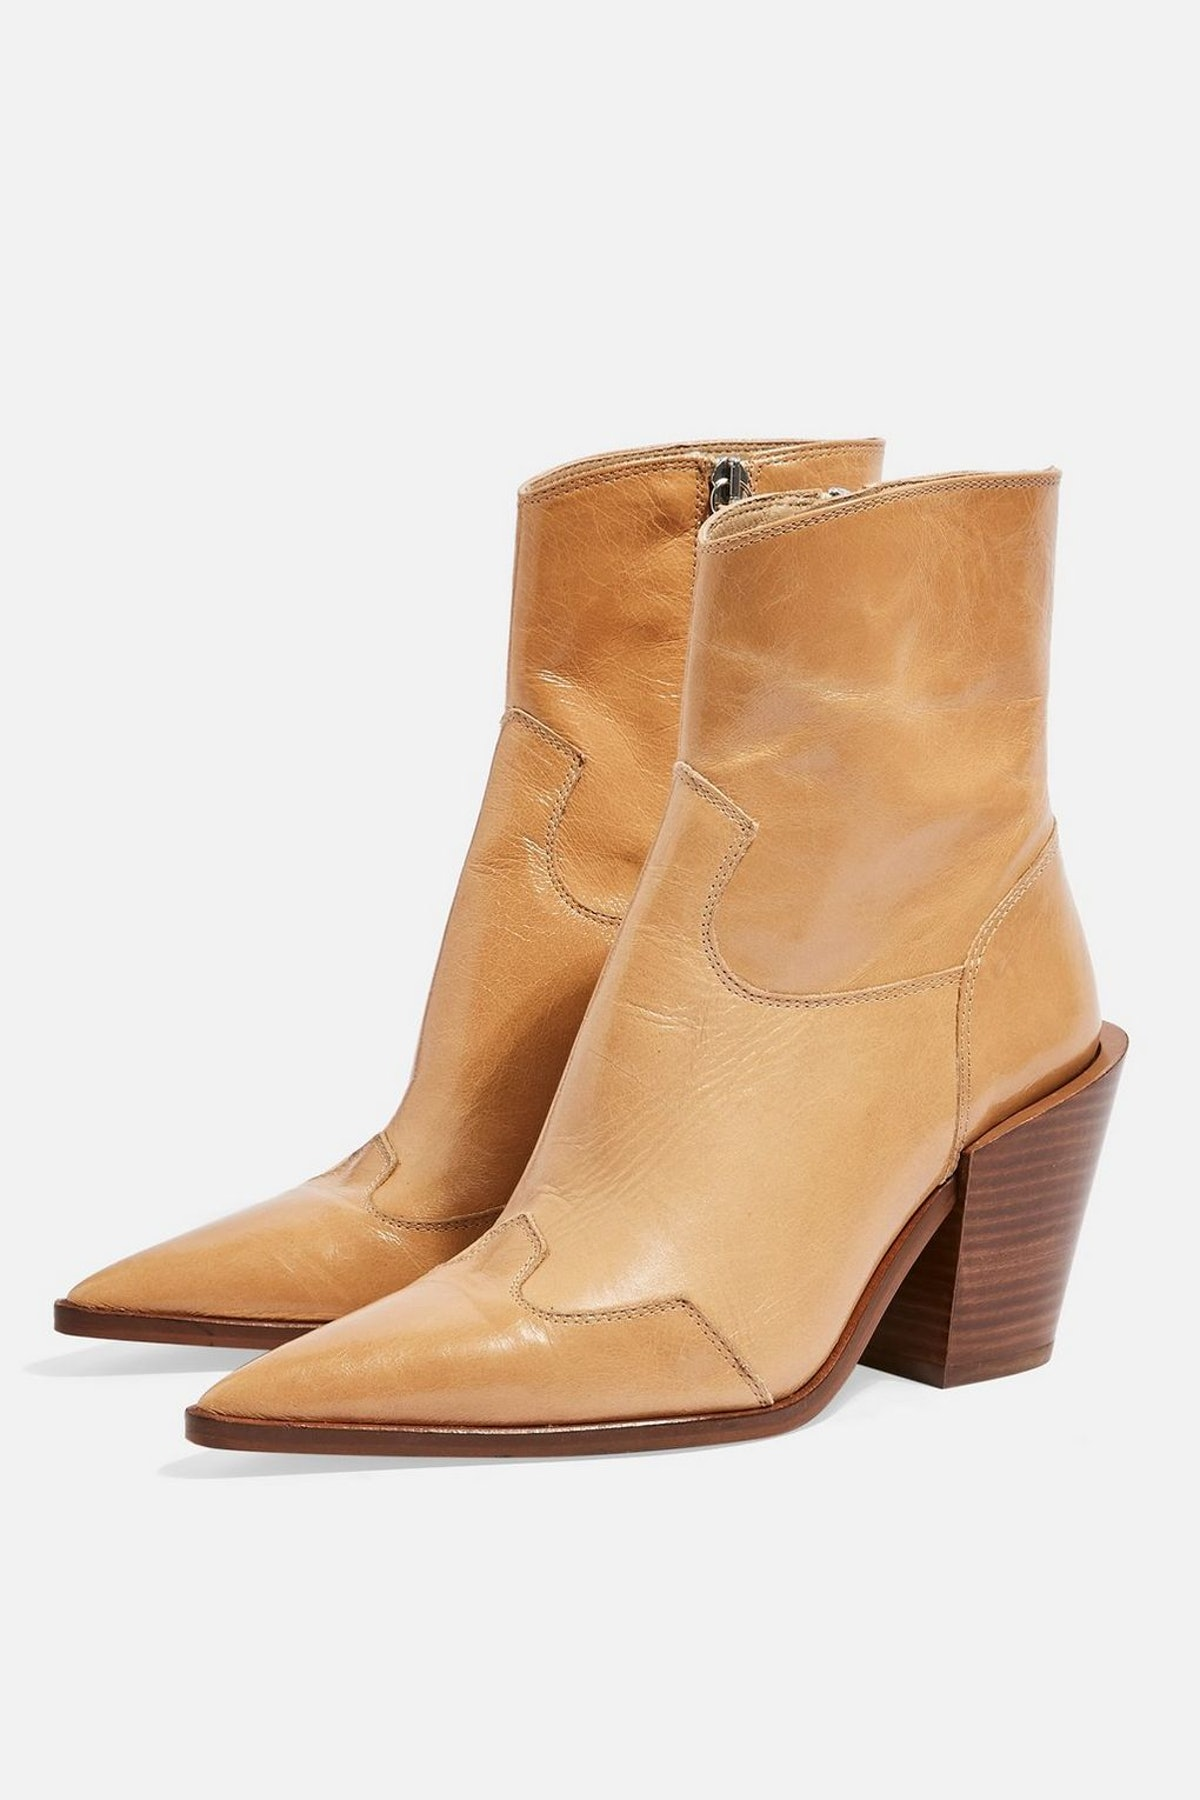 HOWDIE High Heel Ankle Boots